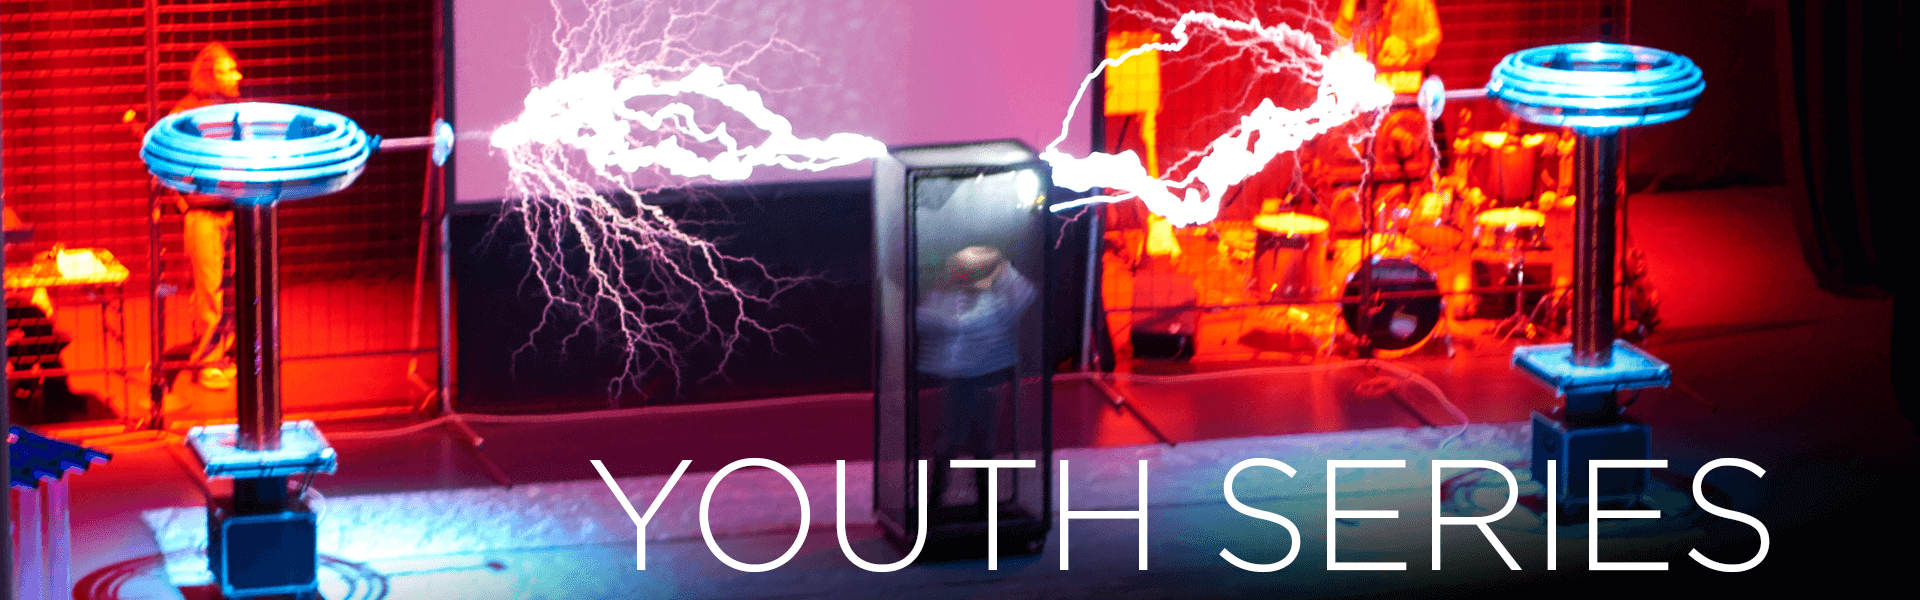 Youth Series